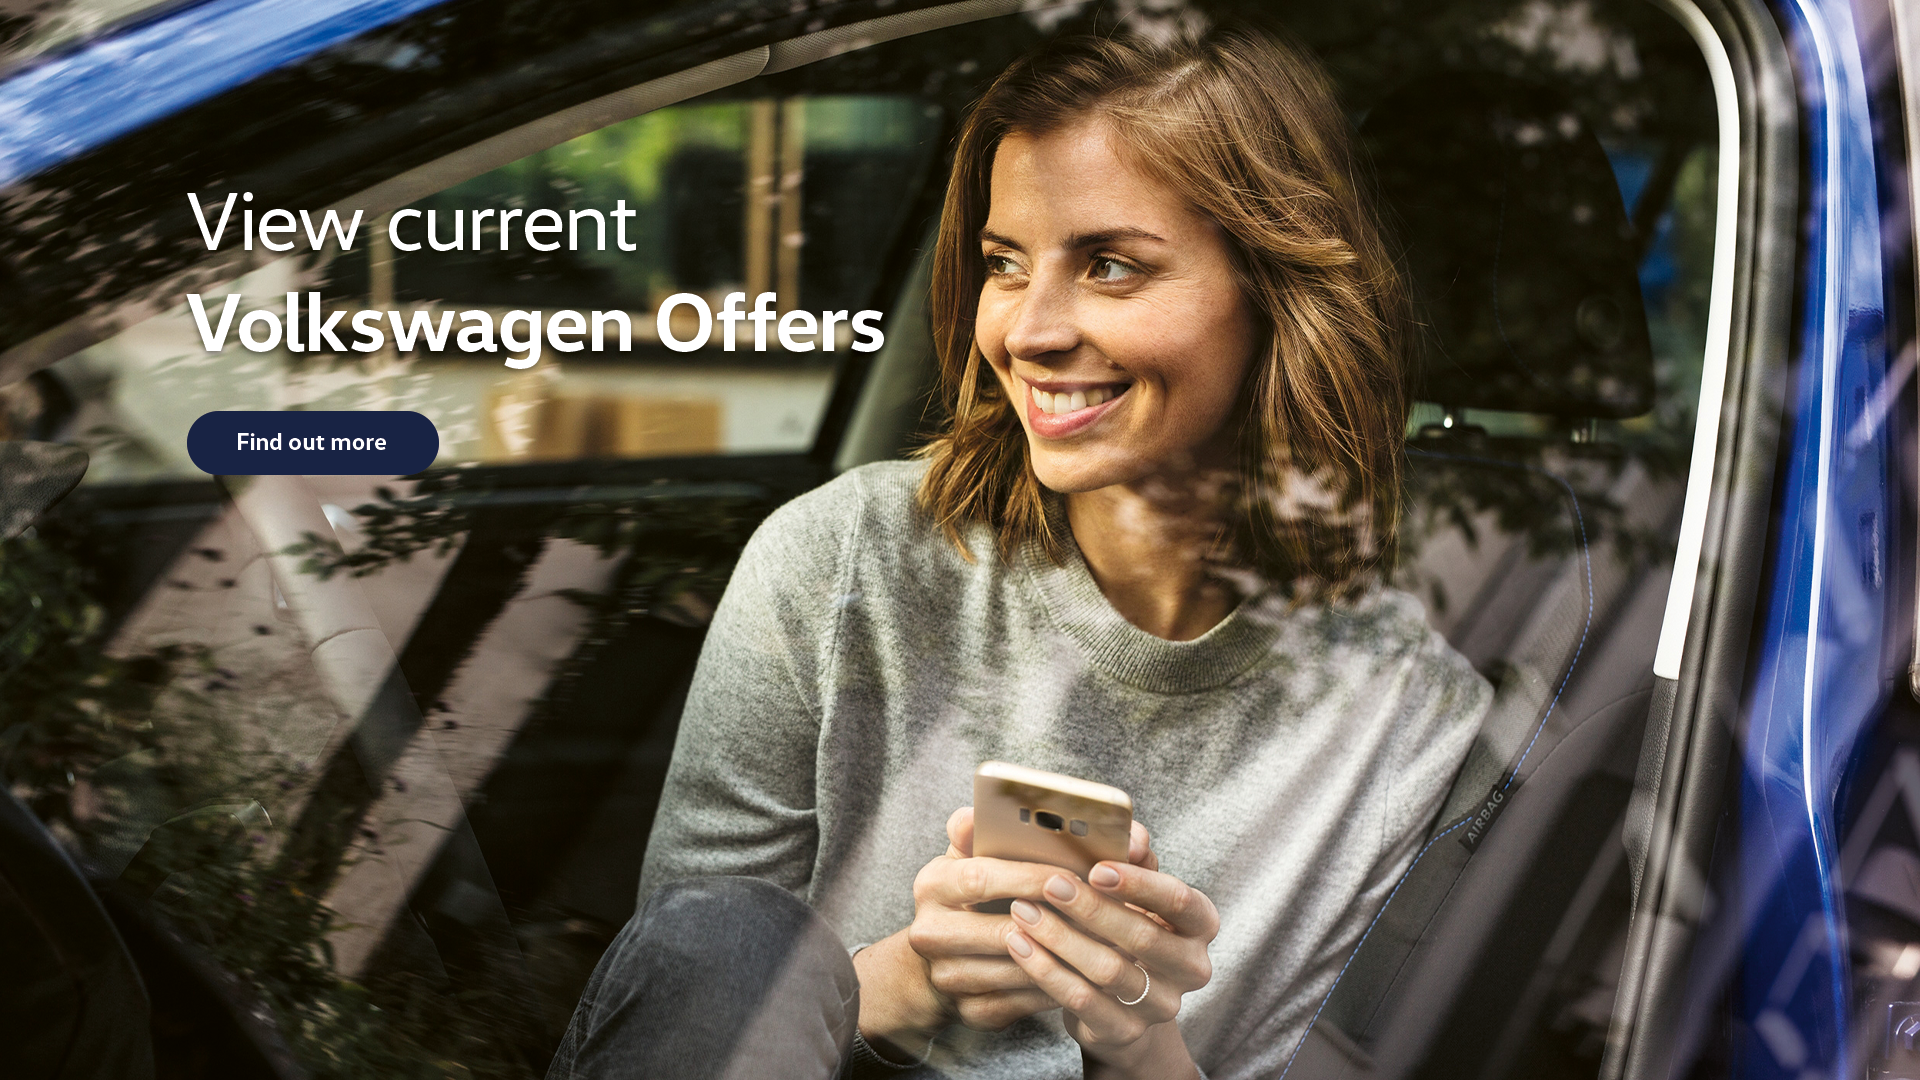 View Current Volkswagen Offers - Find out more